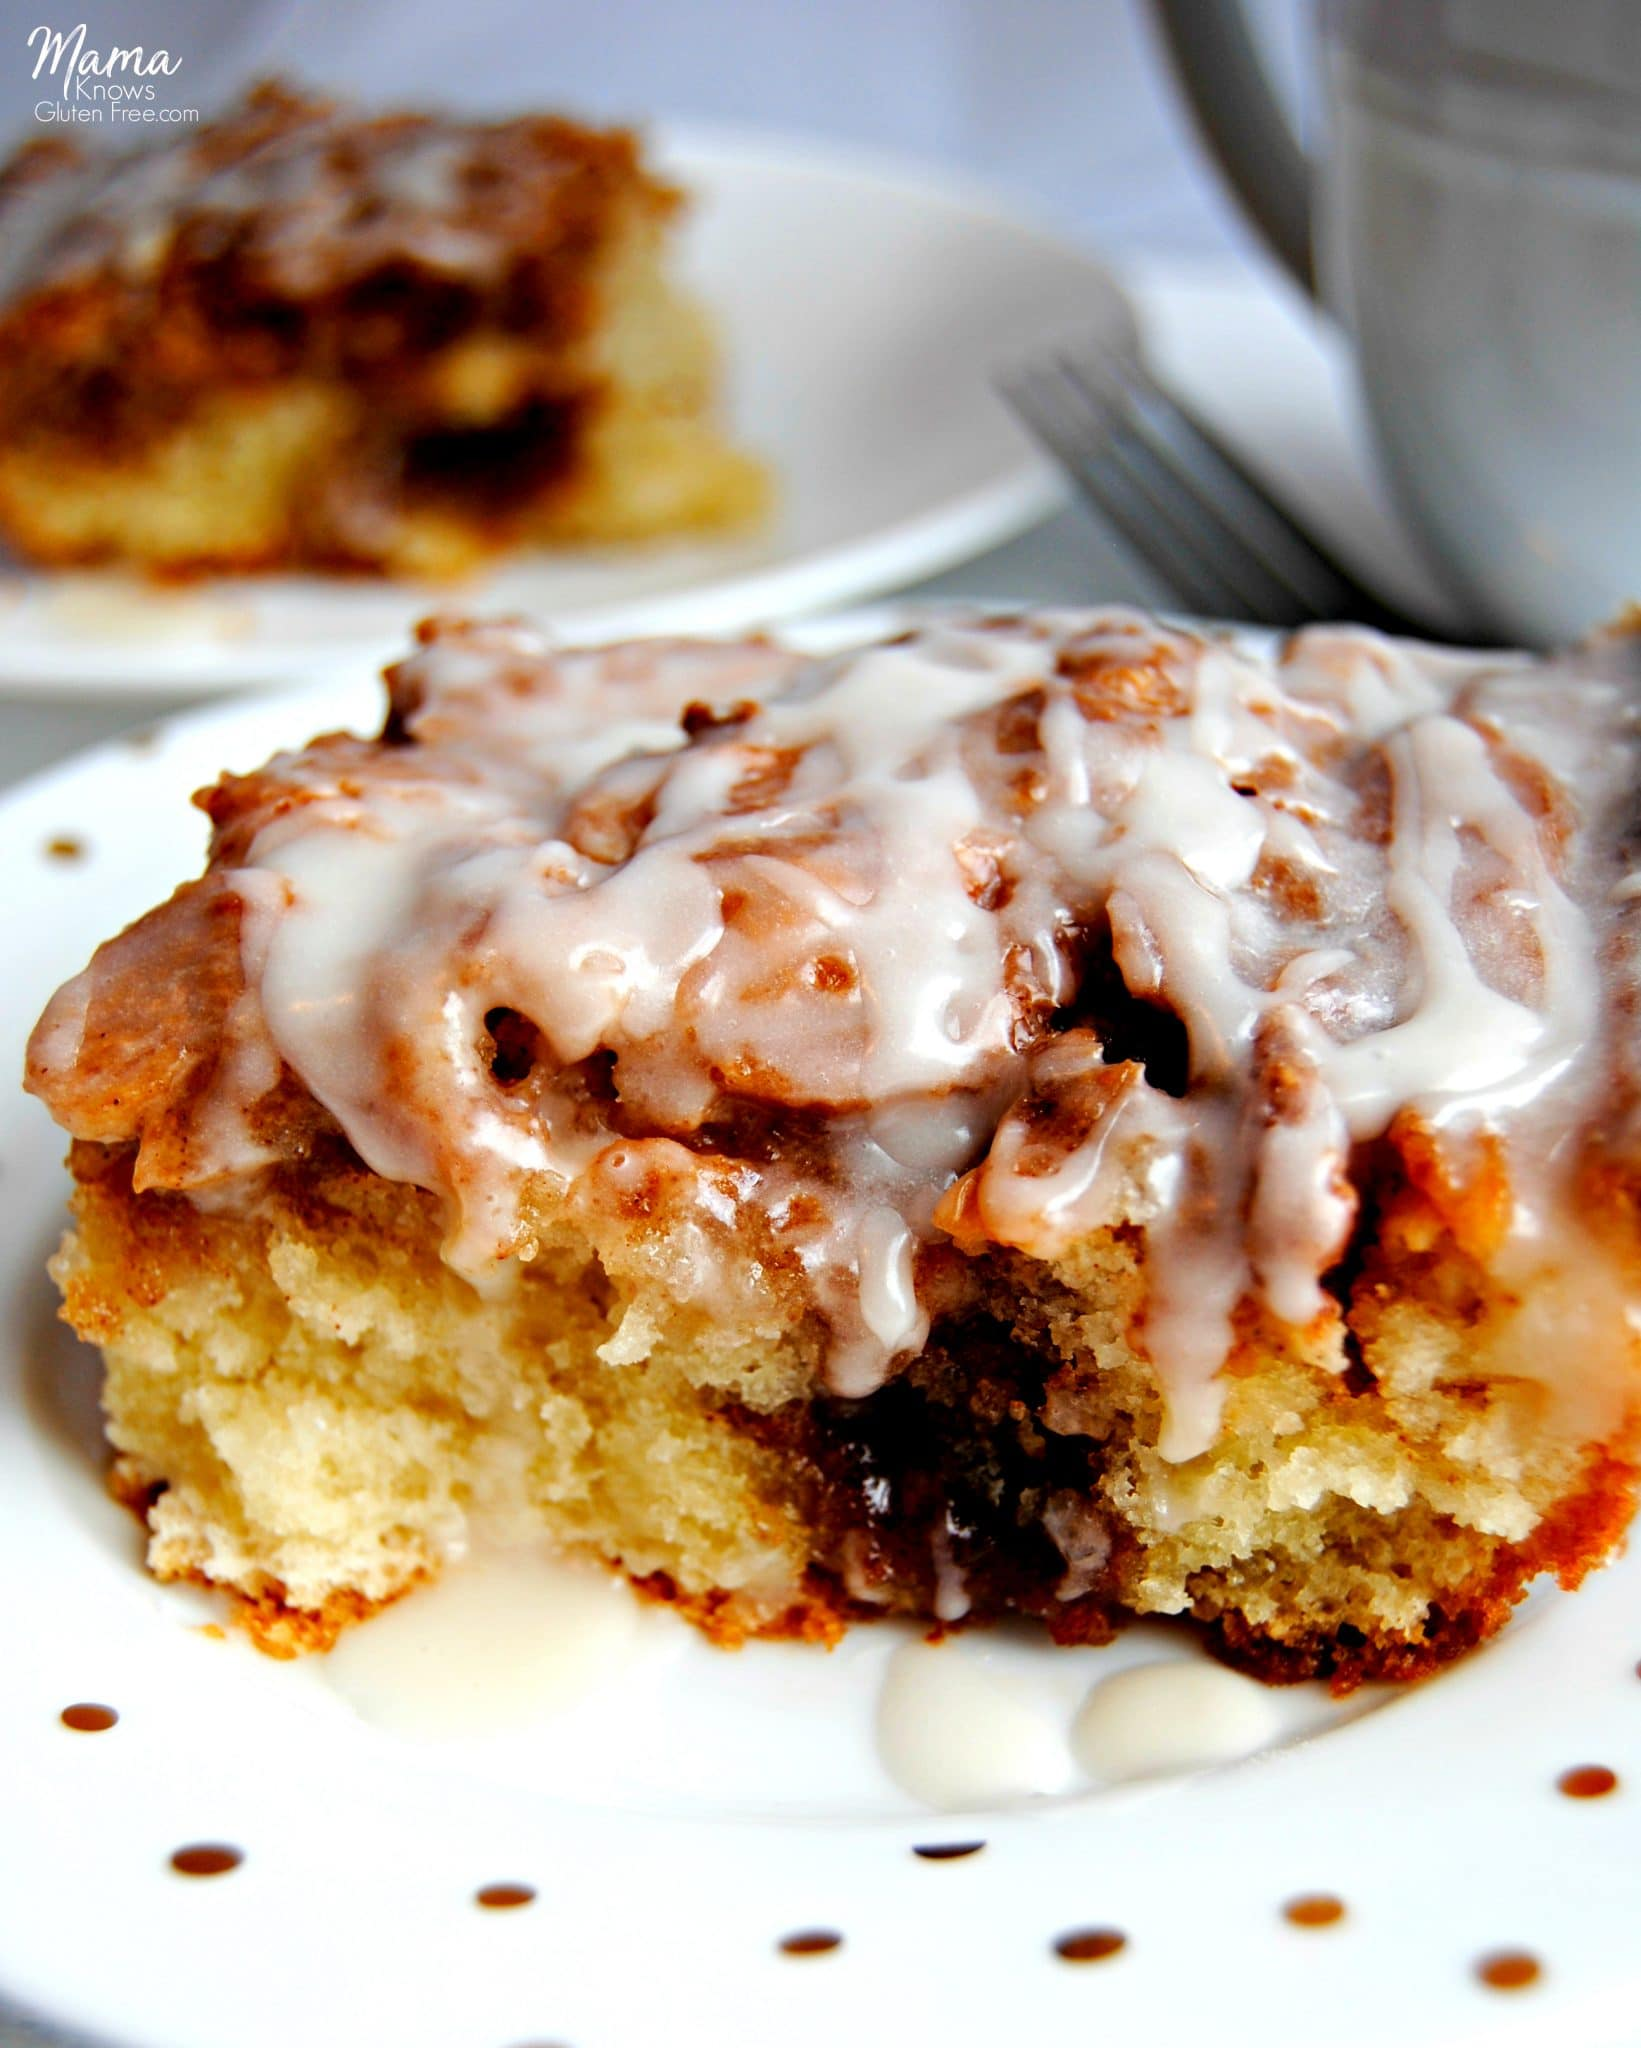 Gluten-Free Cinnamon Roll Cake Recipe